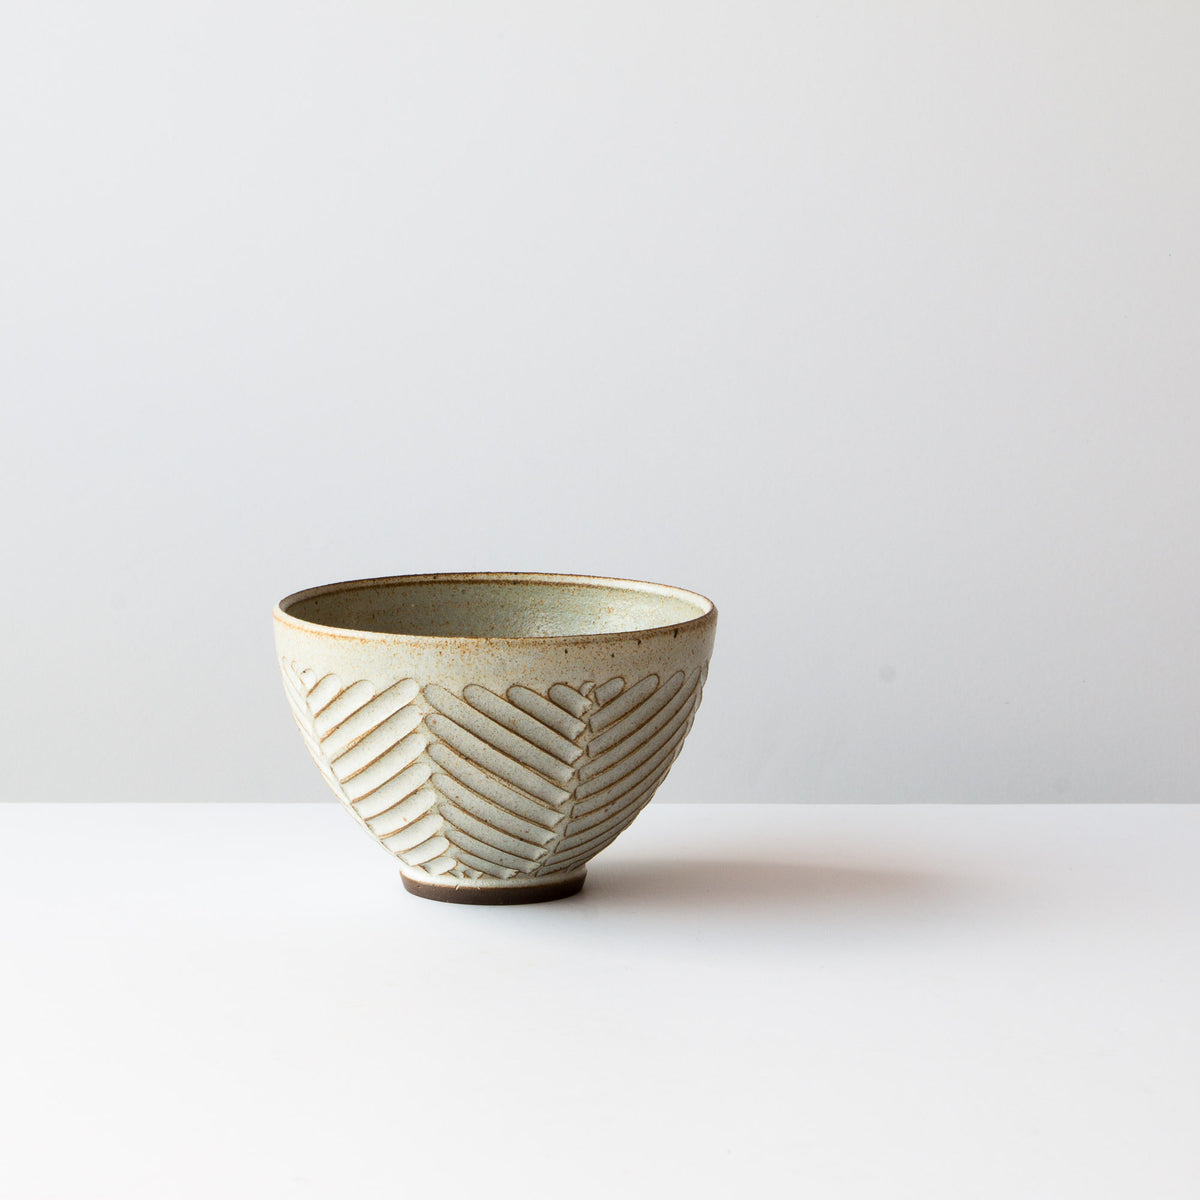 Greige Colour - Side View - Handmade Ceramic Latté Bowl / Coffee Cup - Hand Thrown in Canada - Chic & Basta